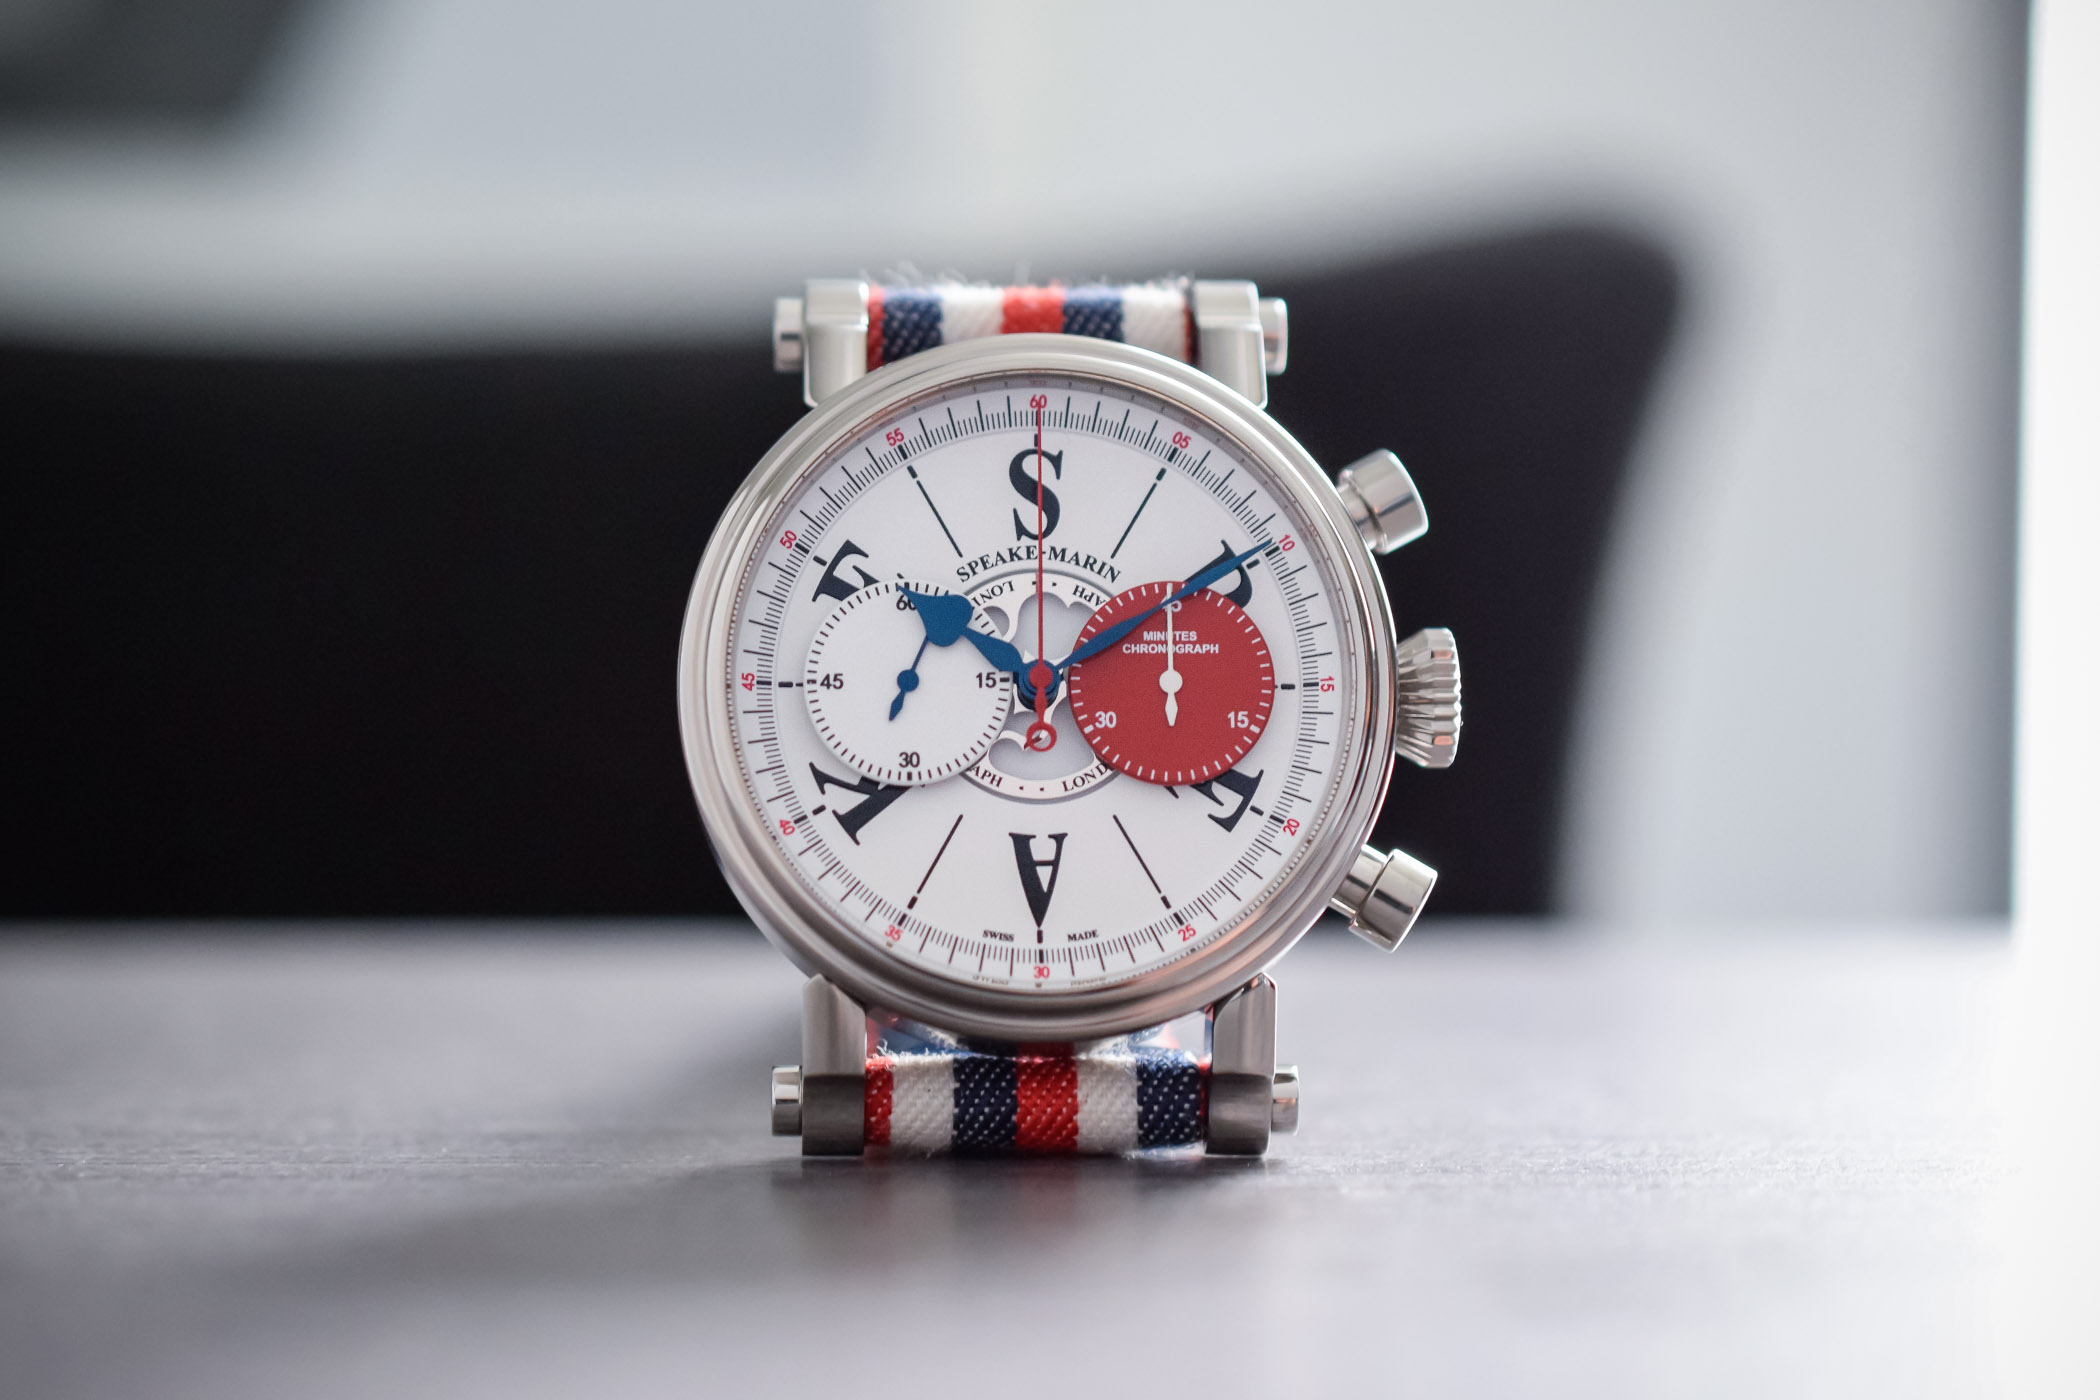 Speake-Marin London Chronograph valjoux 92